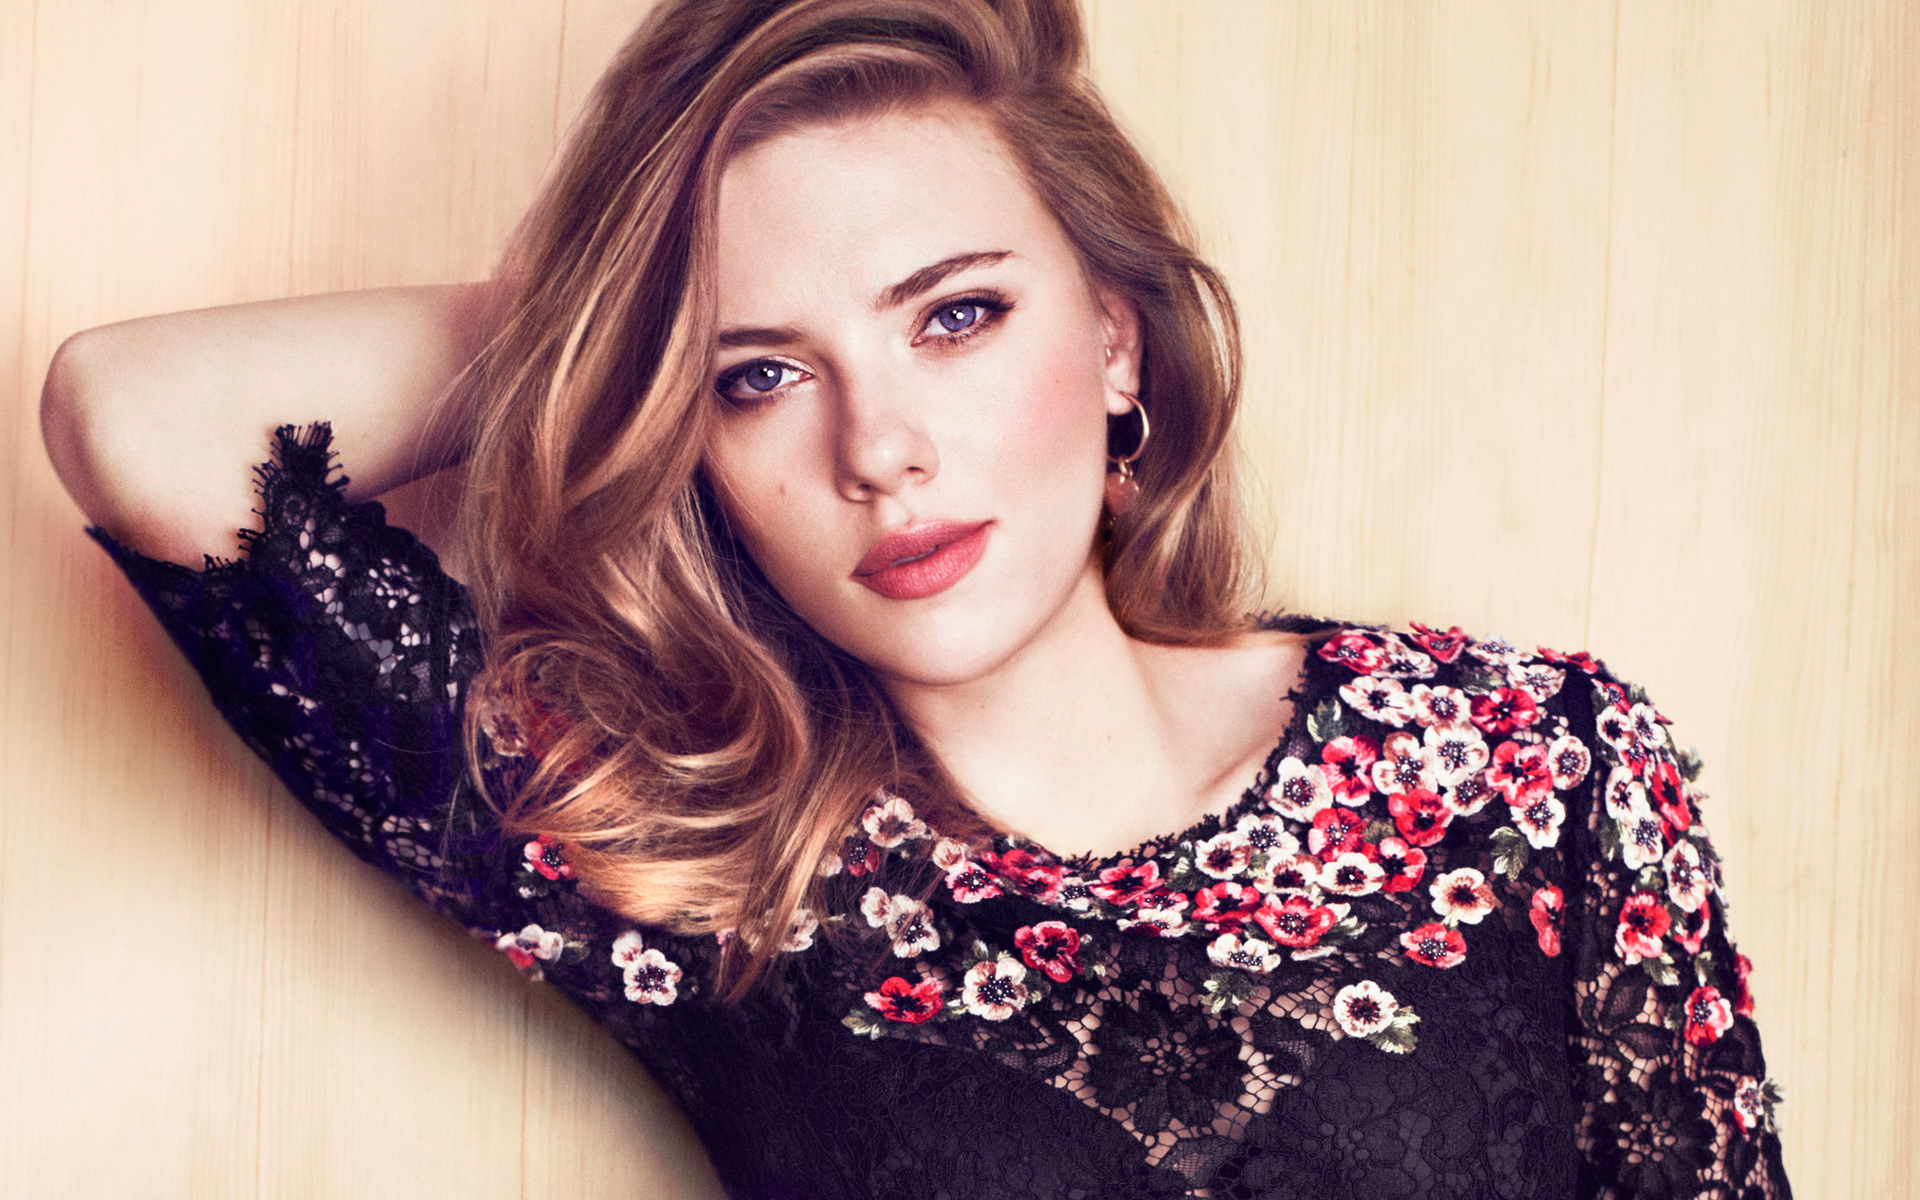 Scarlett Johansson Face Photoshoot